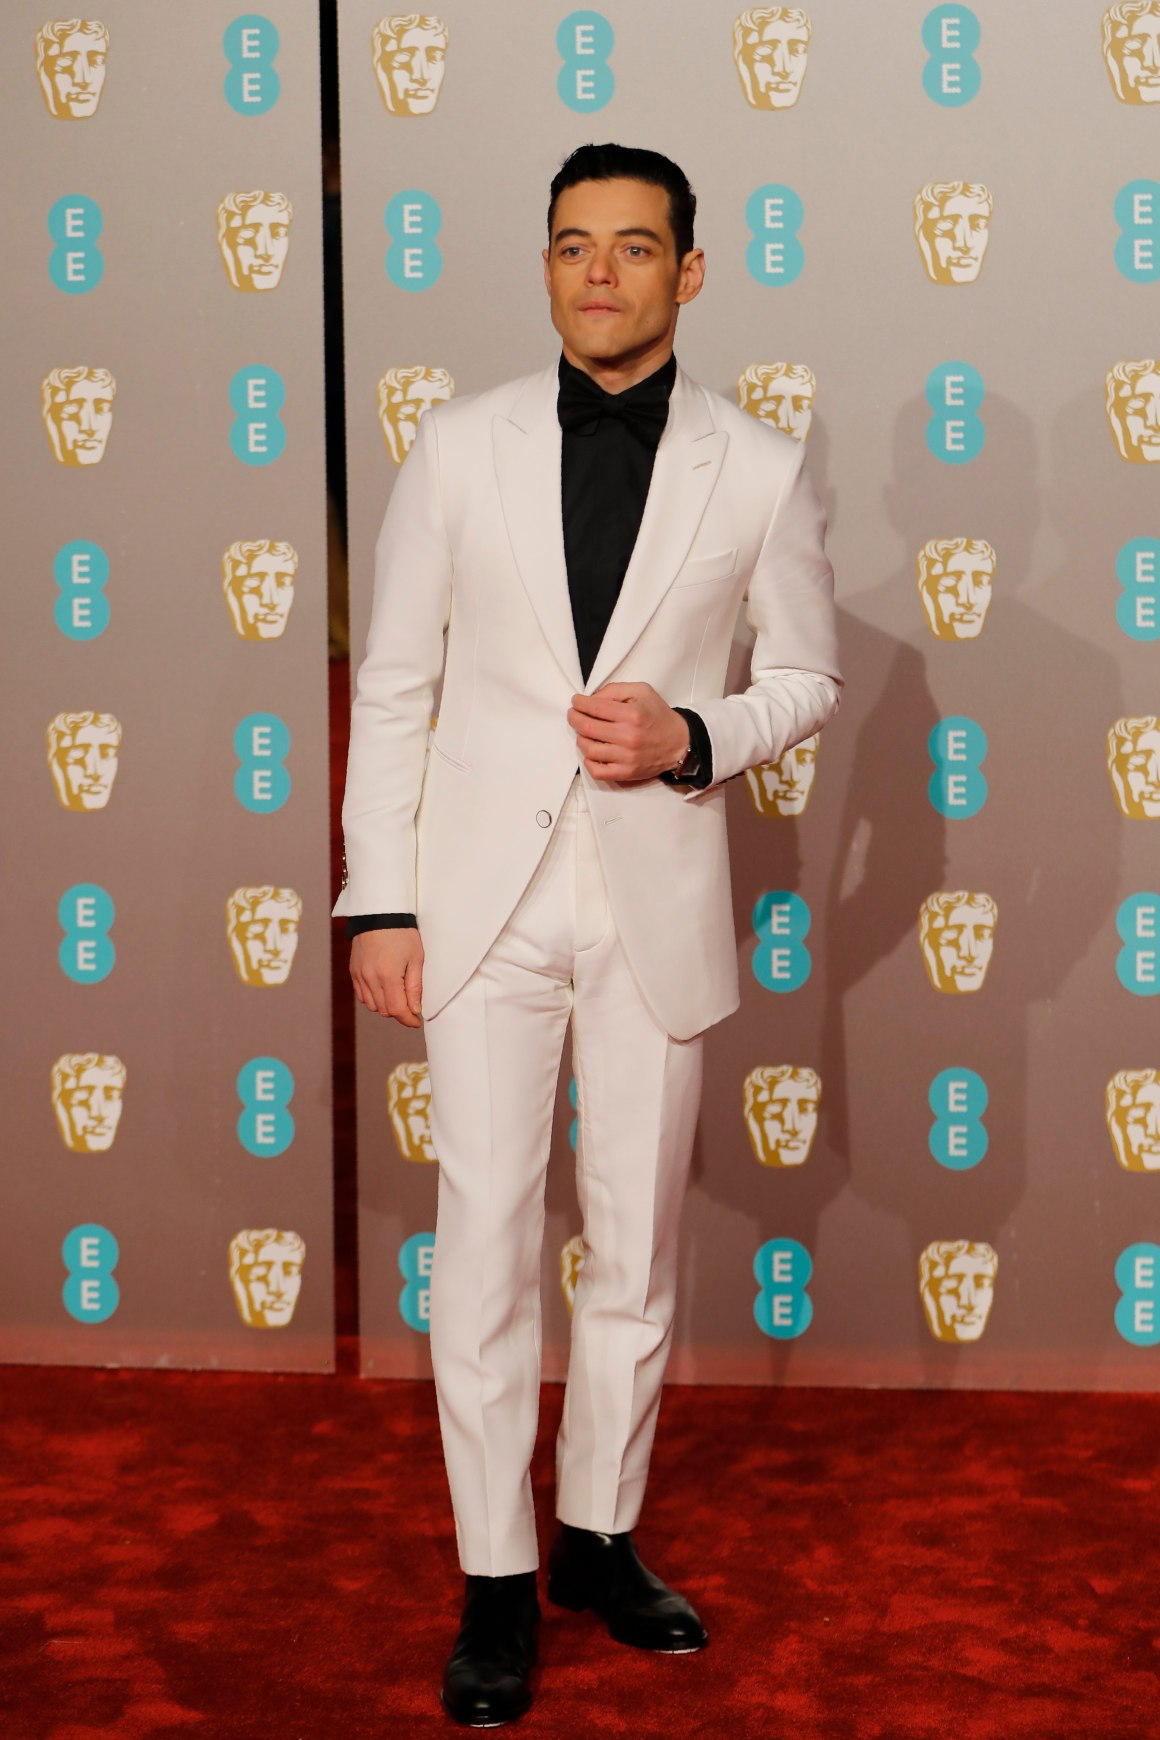 Rami Malek poses on the red carpet upon arrival at the BAFTA British Academy Film Awards